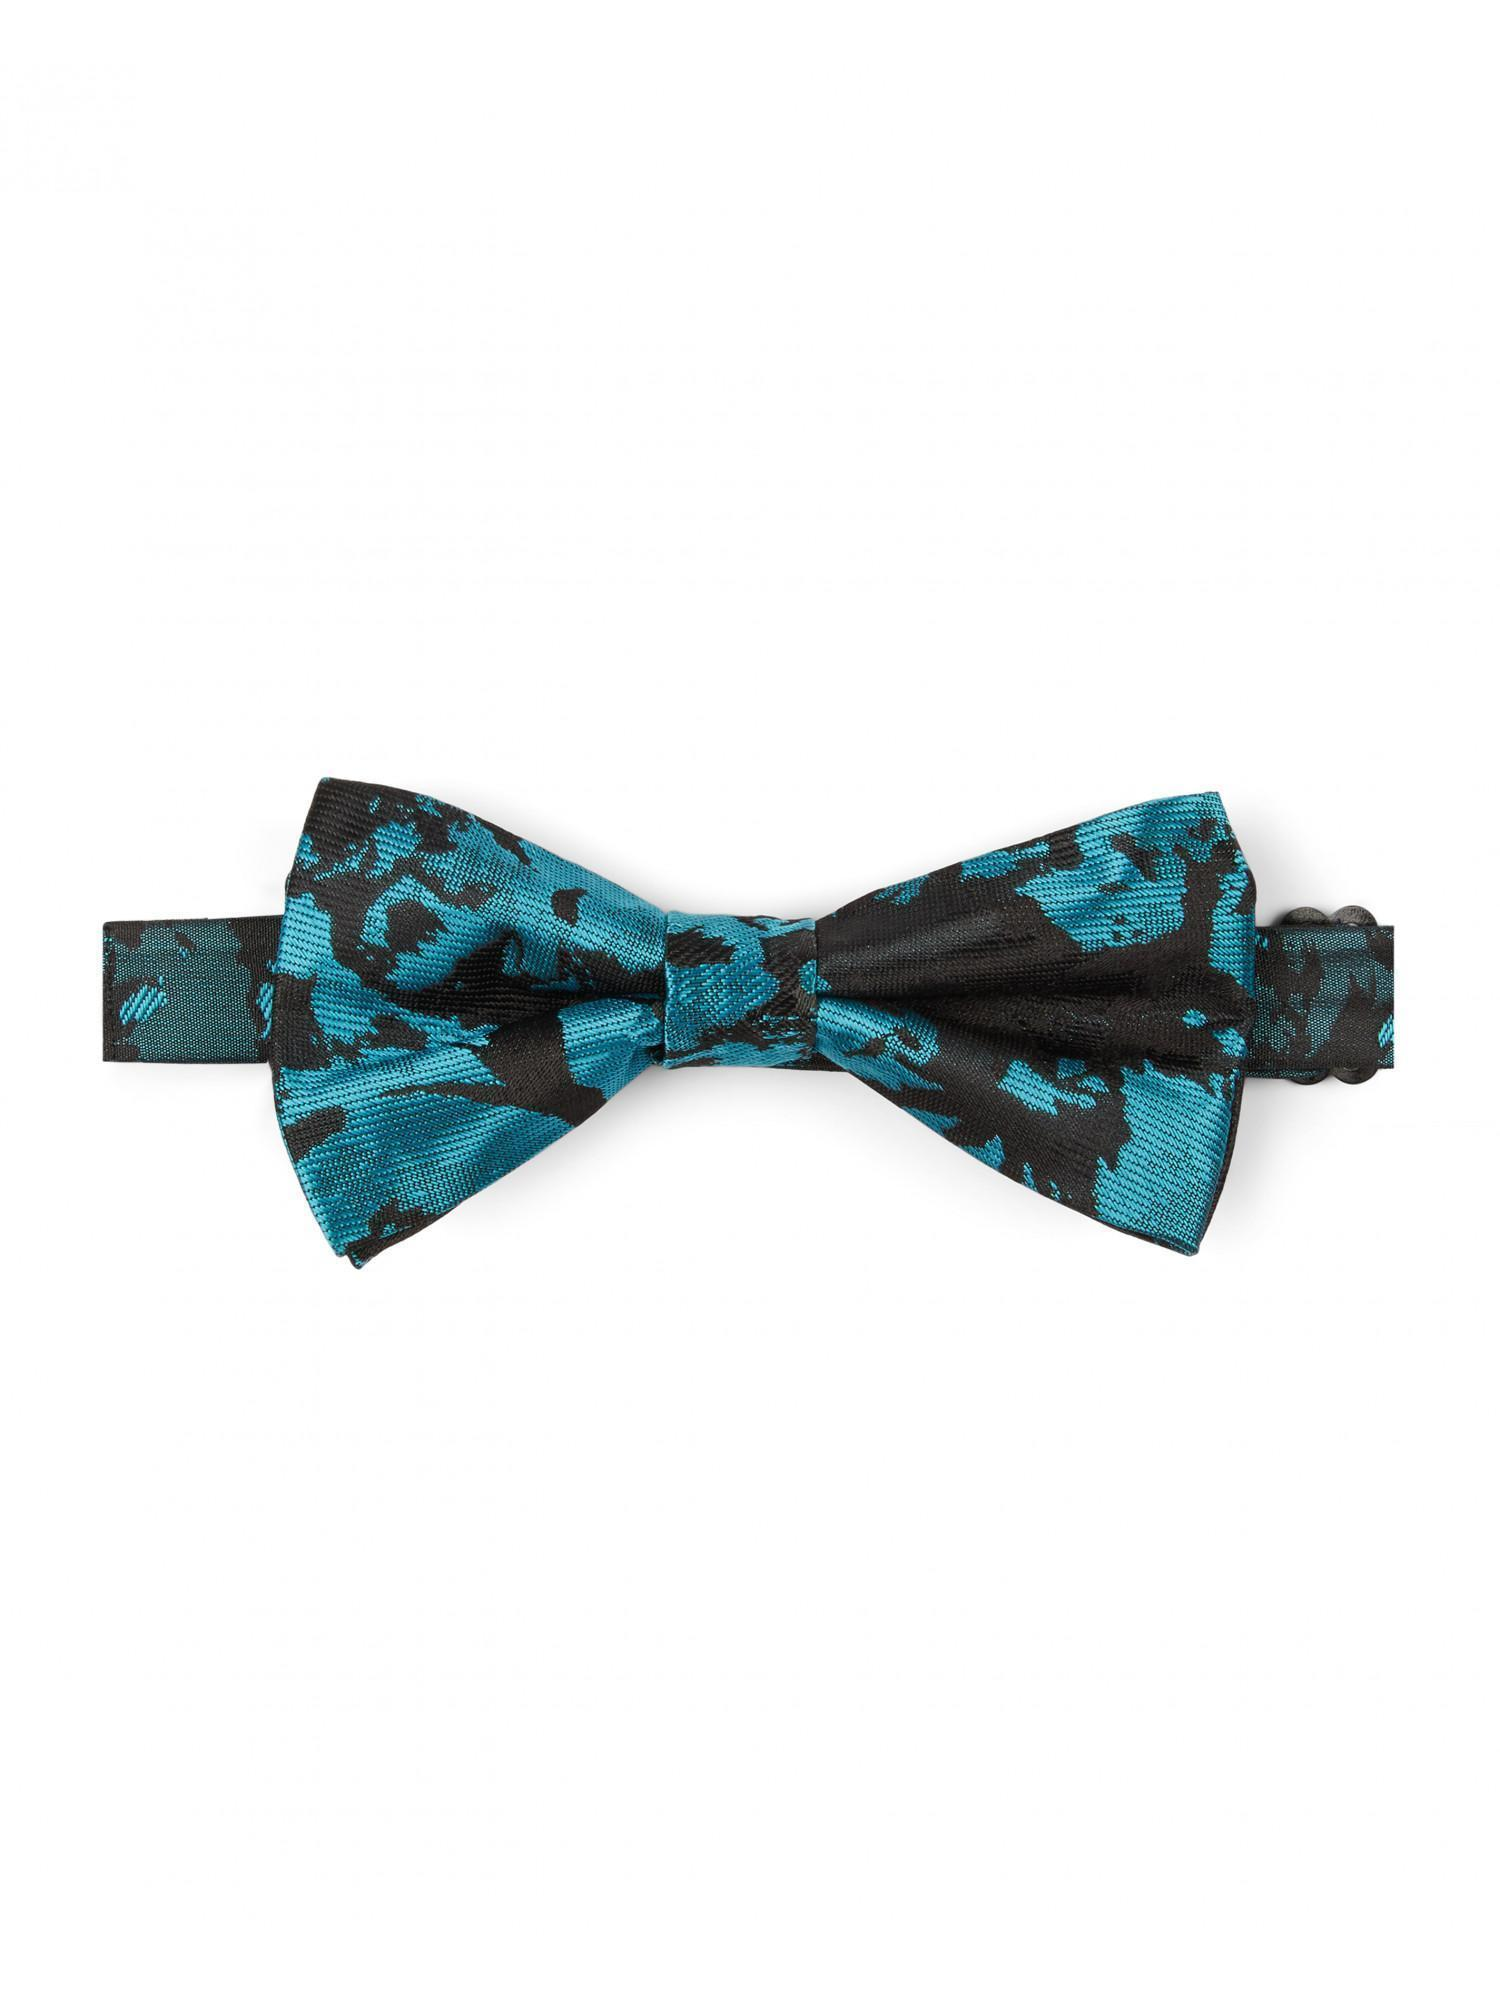 Teal Tonal Leaf Bow Tie By Austin Reed Thread Com